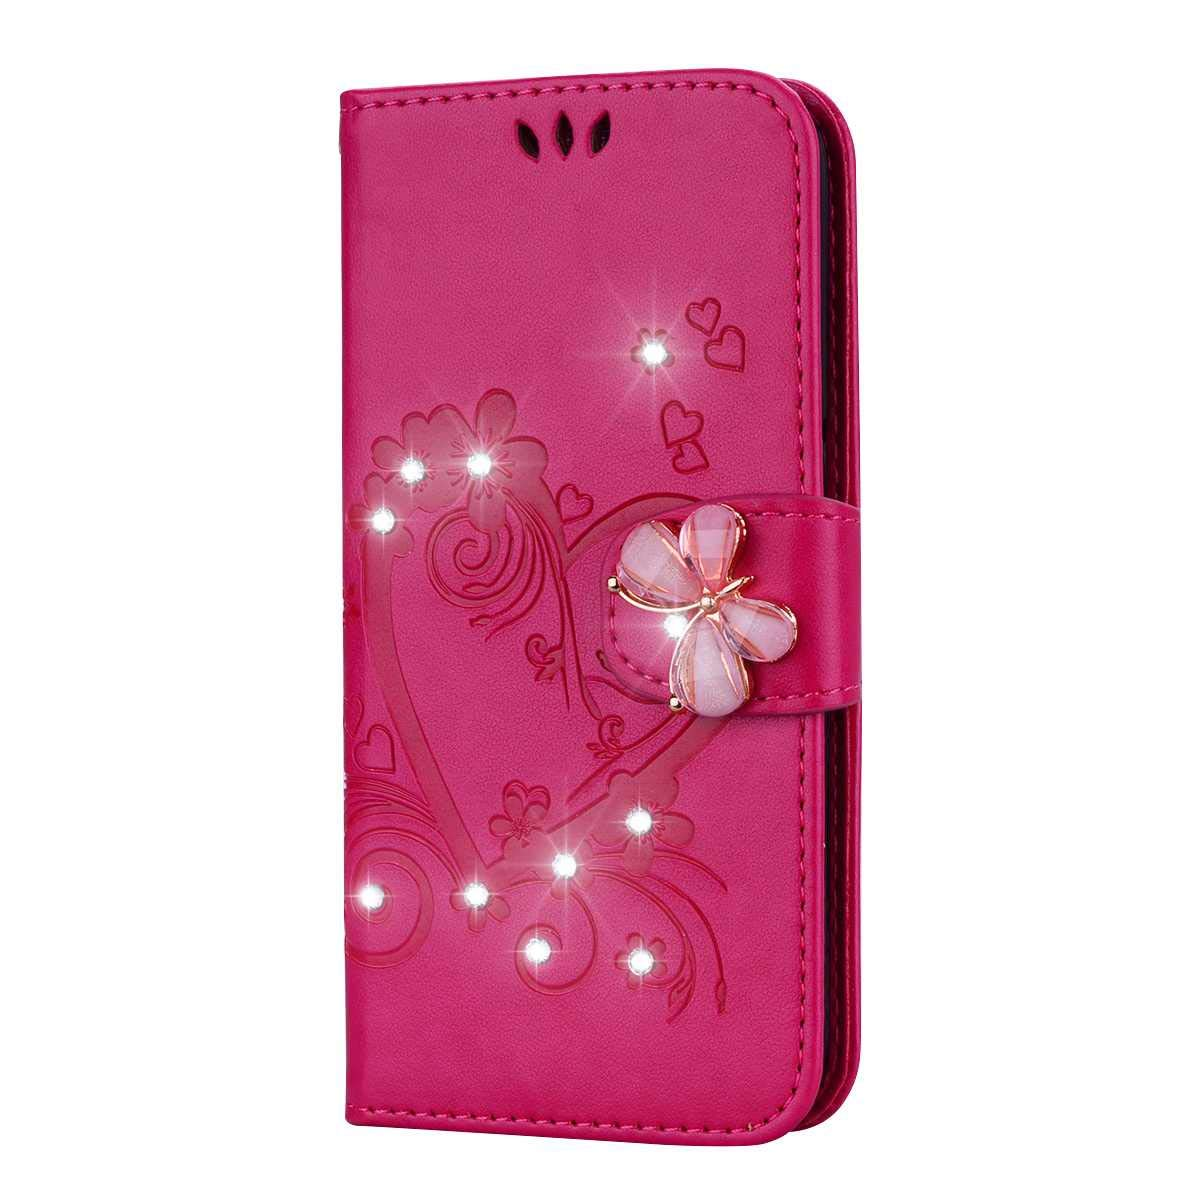 Bear Village Case Compatible with Huawei Y6 2018 / Honor 7A, Leather Full Body Protective Cover with Credit Card Slot, Magnetic Closure and Kickstand Function, Rose Red by Bear Village